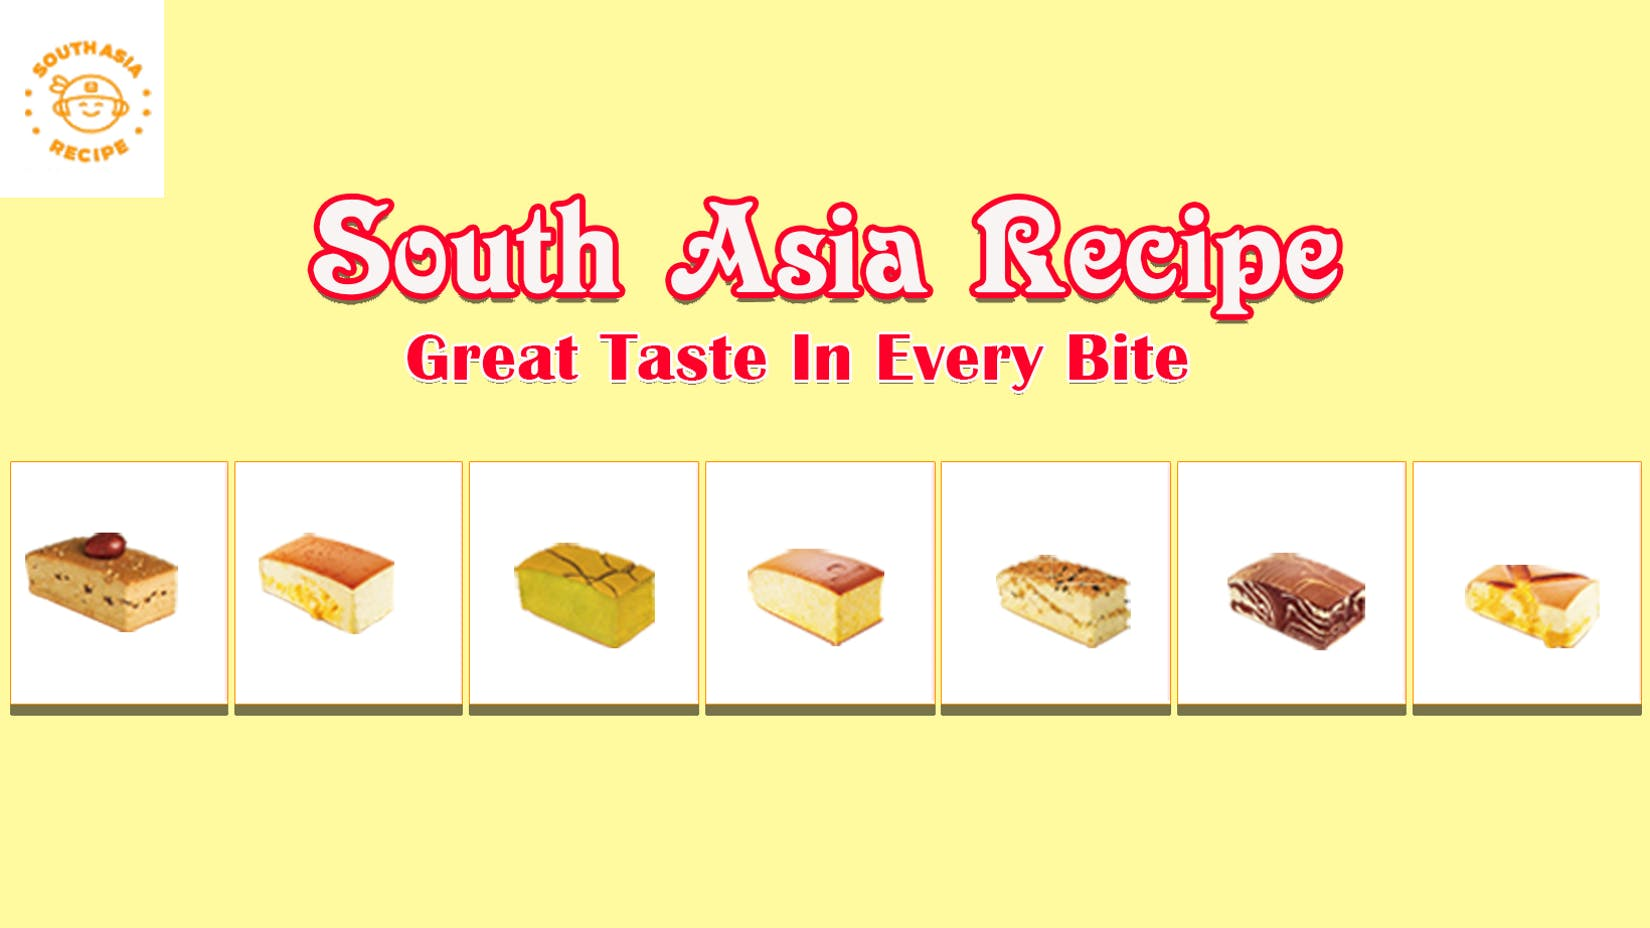 South Asia Recipe | yathar